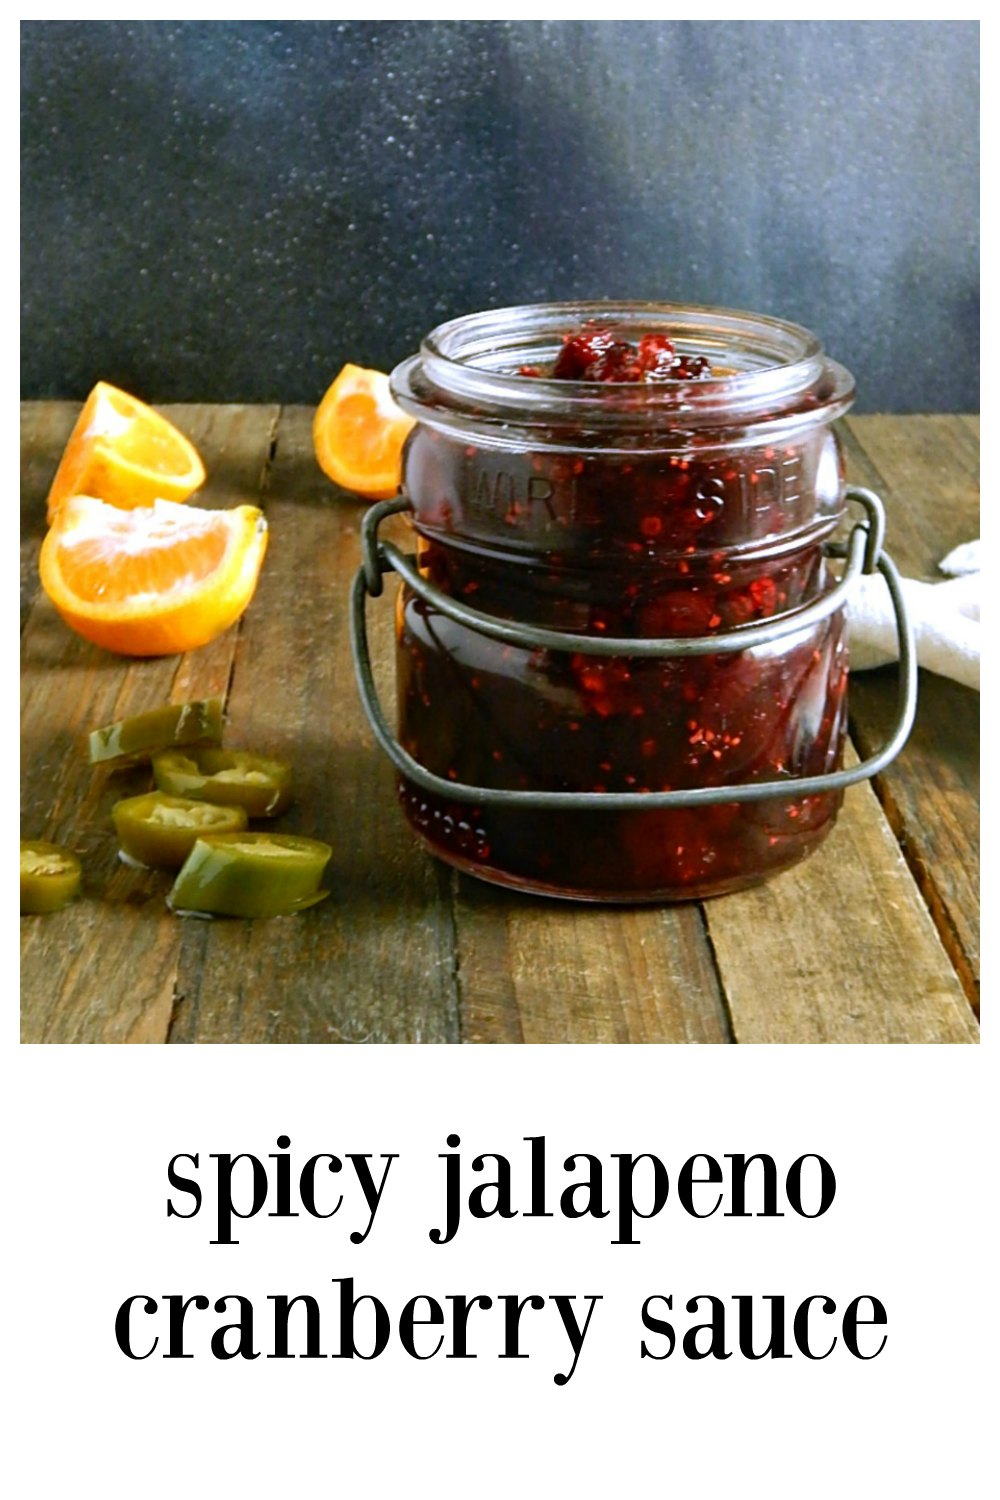 This Spicy Jalapeno Cranberry Sauce is not your Grandma's sauce! It's a jammy chutney, zinging with flavor. A perfect counterbalance to your holiday meal. #CranberrySauce #SpicyJalapenoCranberrySauce #SpicyCranberryChutney #JalapenoGingerCranberrySauce